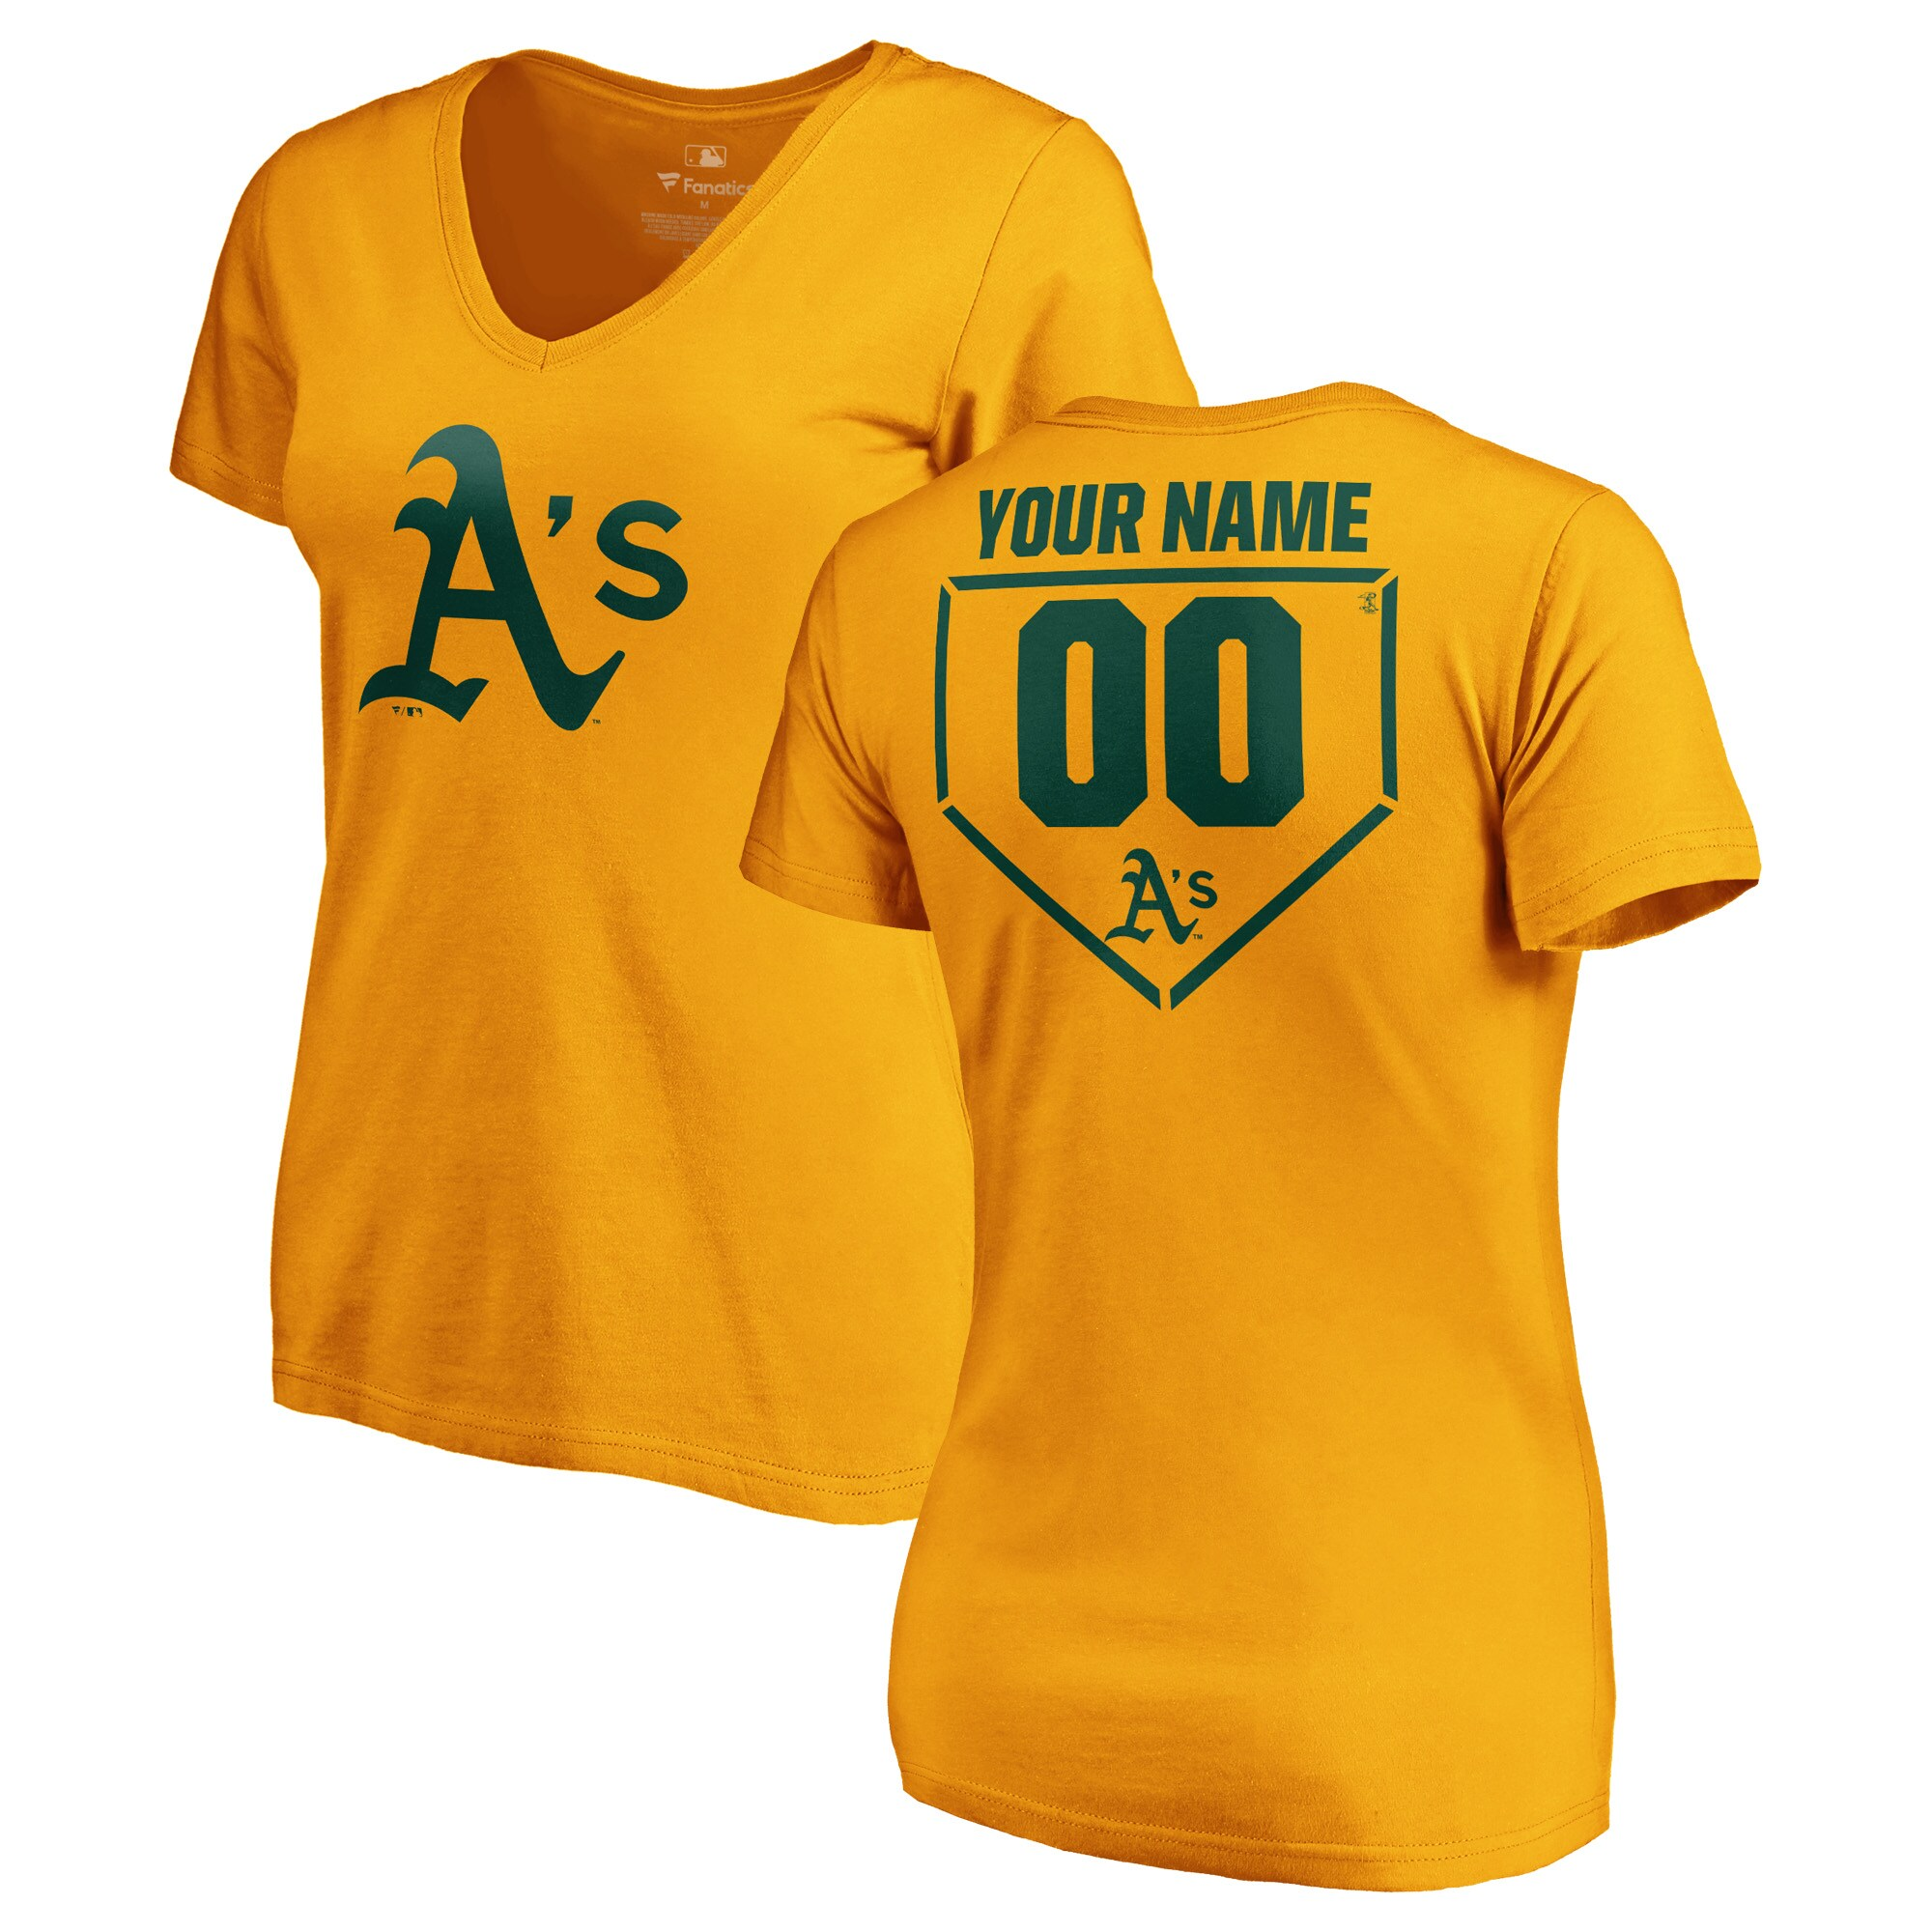 Oakland Athletics Fanatics Branded Women's Personalized RBI Slim Fit V-Neck T-Shirt - Gold